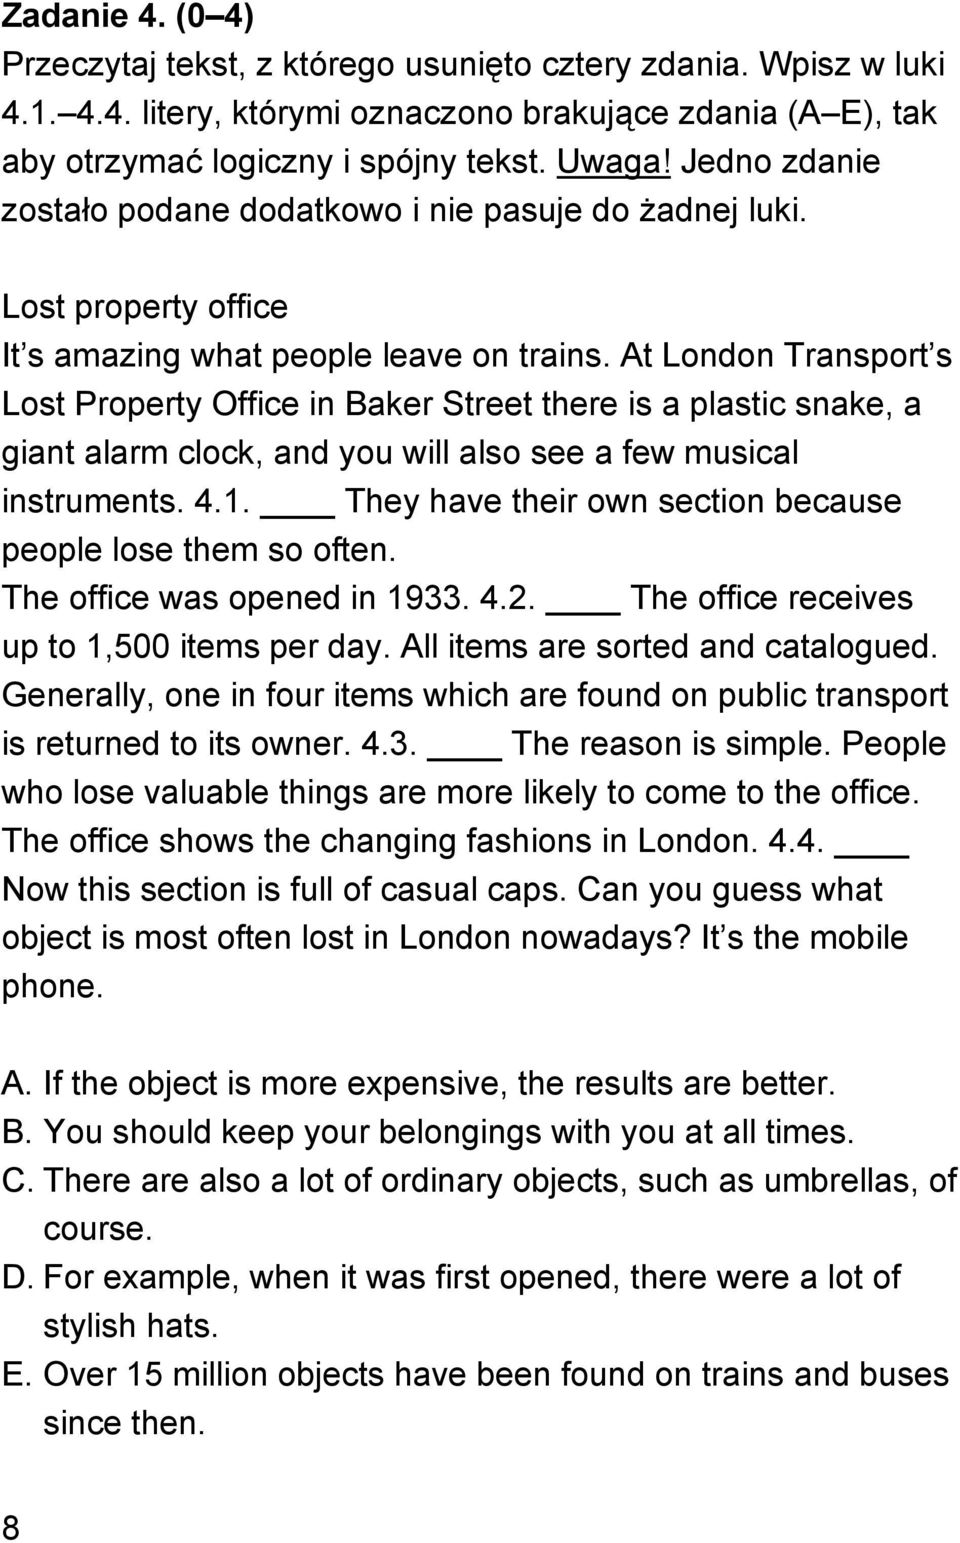 At London Transport s Lost Property Office in Baker Street there is a plastic snake, a giant alarm clock, and you will also see a few musical instruments. 4.1.